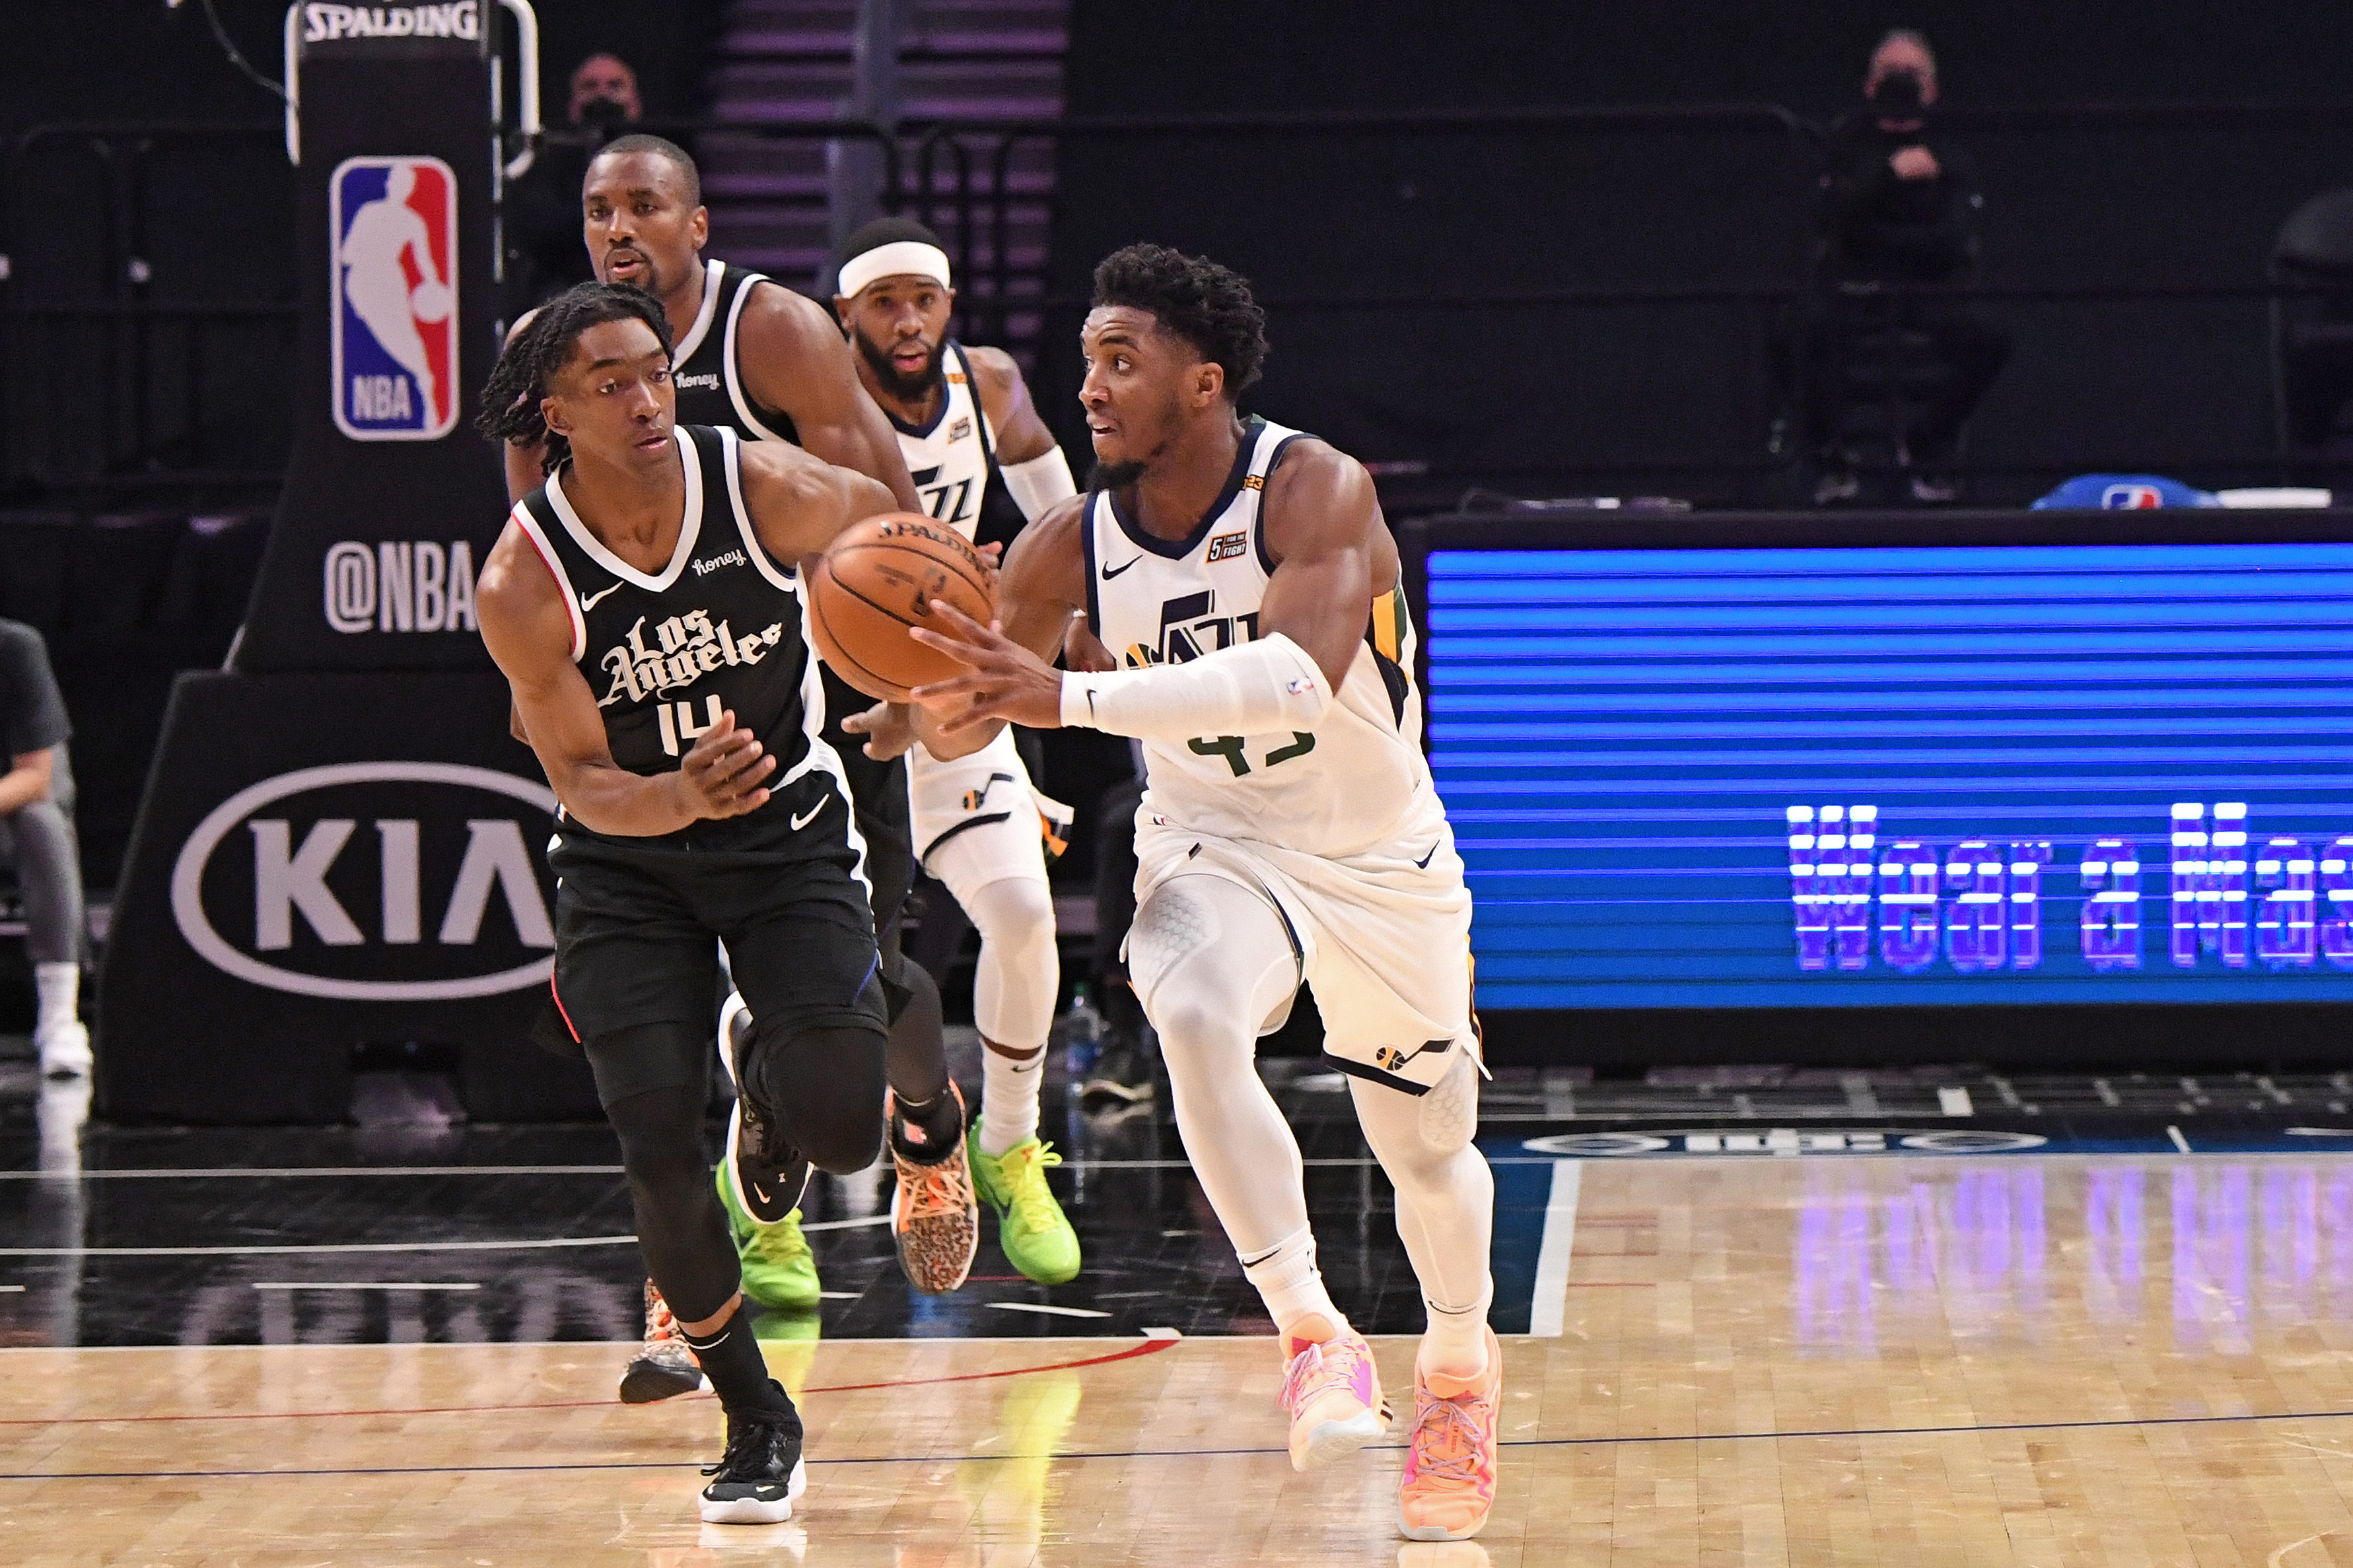 Donovan Mitchell of the Utah Jazz handles the ball during the game against the LA Clippers on February 19, 2021 at STAPLES Center in Los Angeles, California.